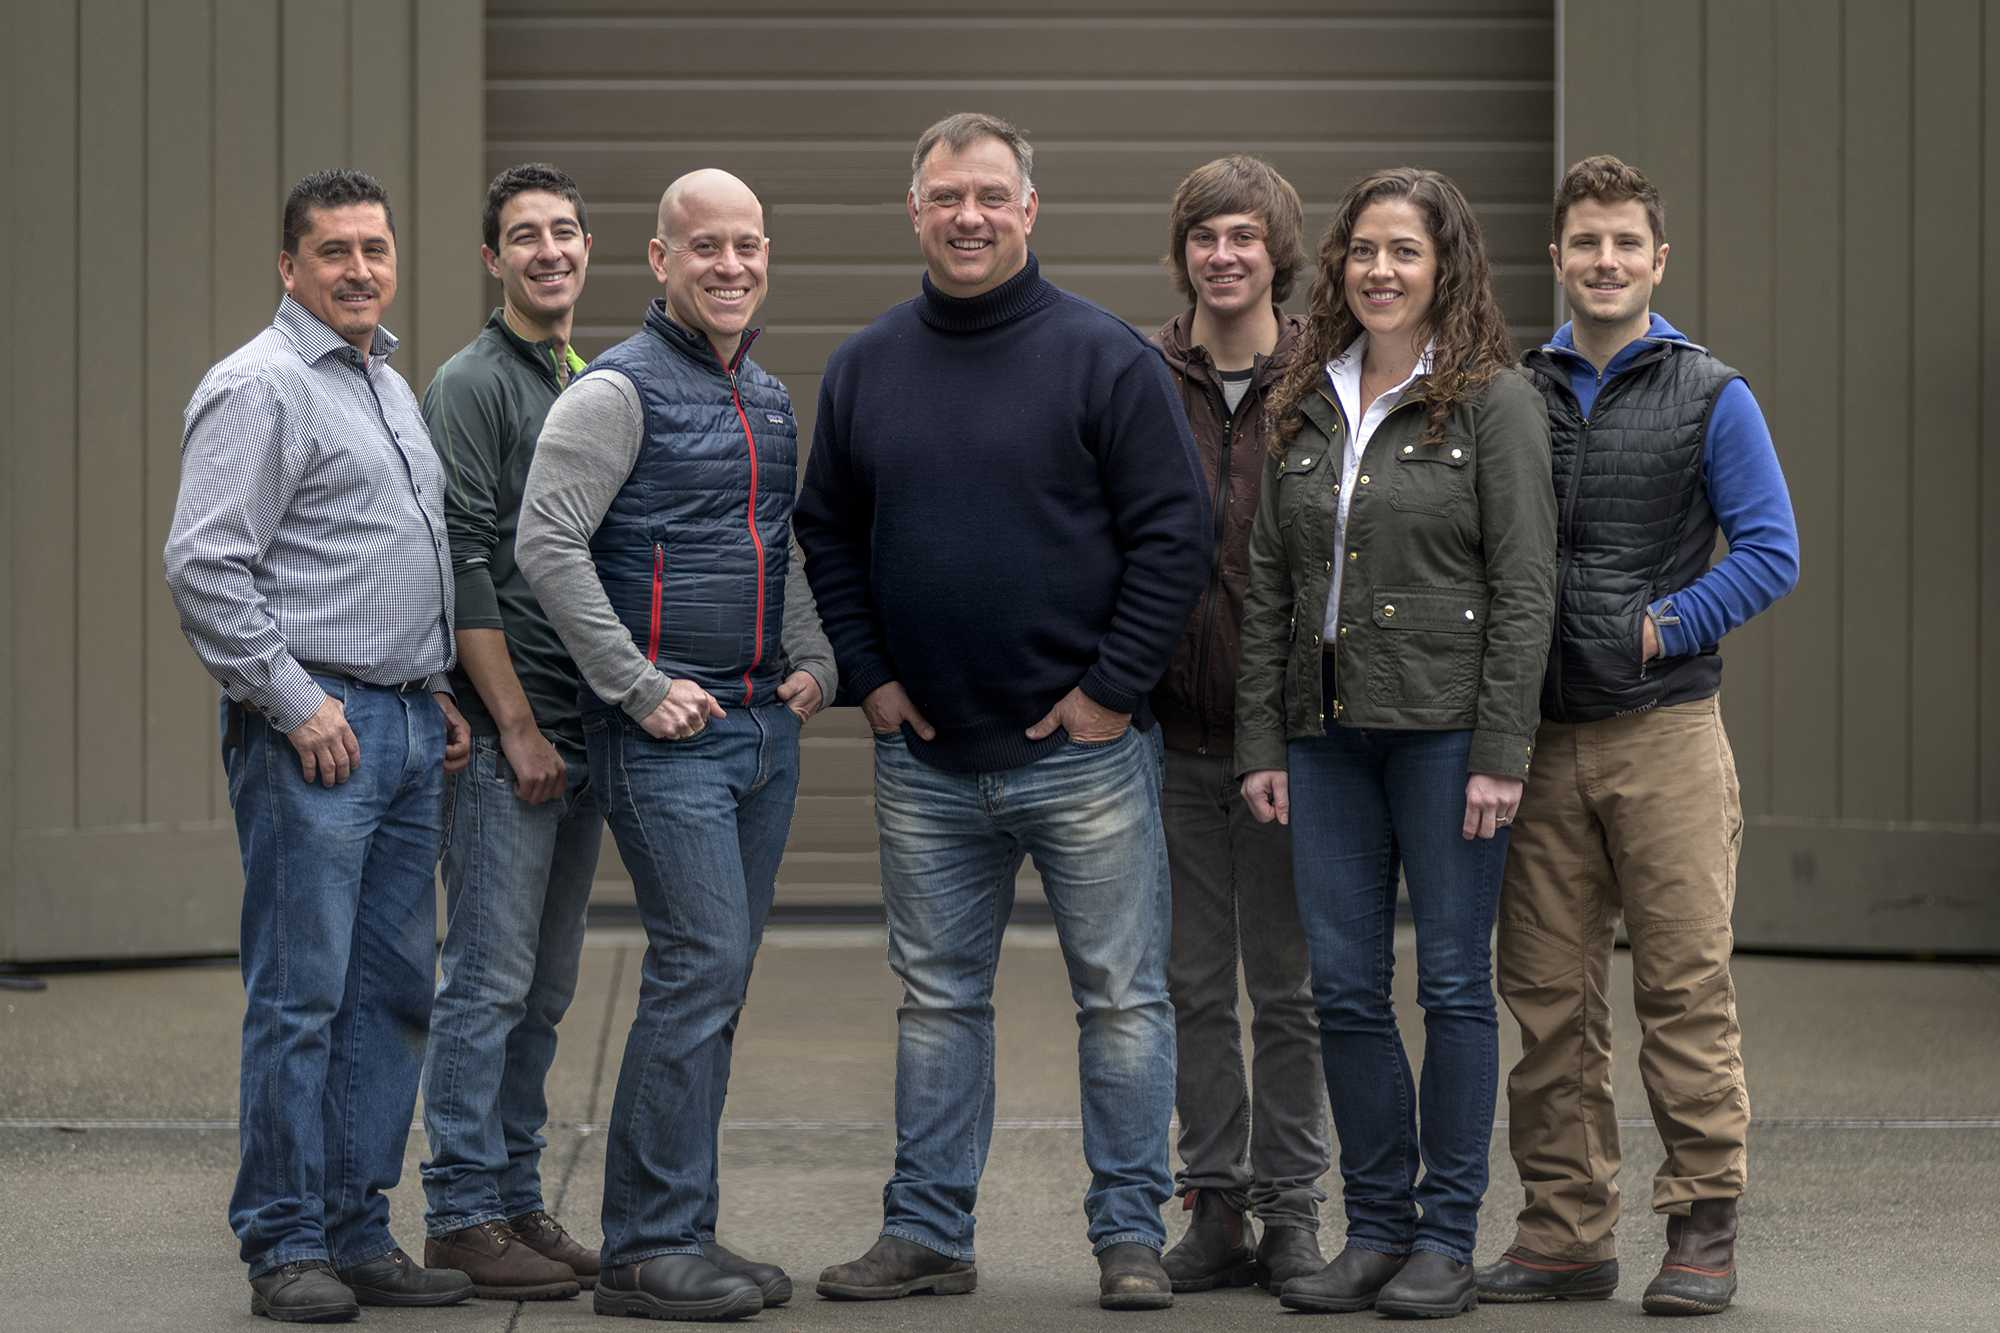 The Olema Team, from left to right: Roberto Barbosa, Matt Gonzalez, Jesse Fox, Tony Biagi, Zander Deetz, Jessica Valenzuela and Dan Pescetti.